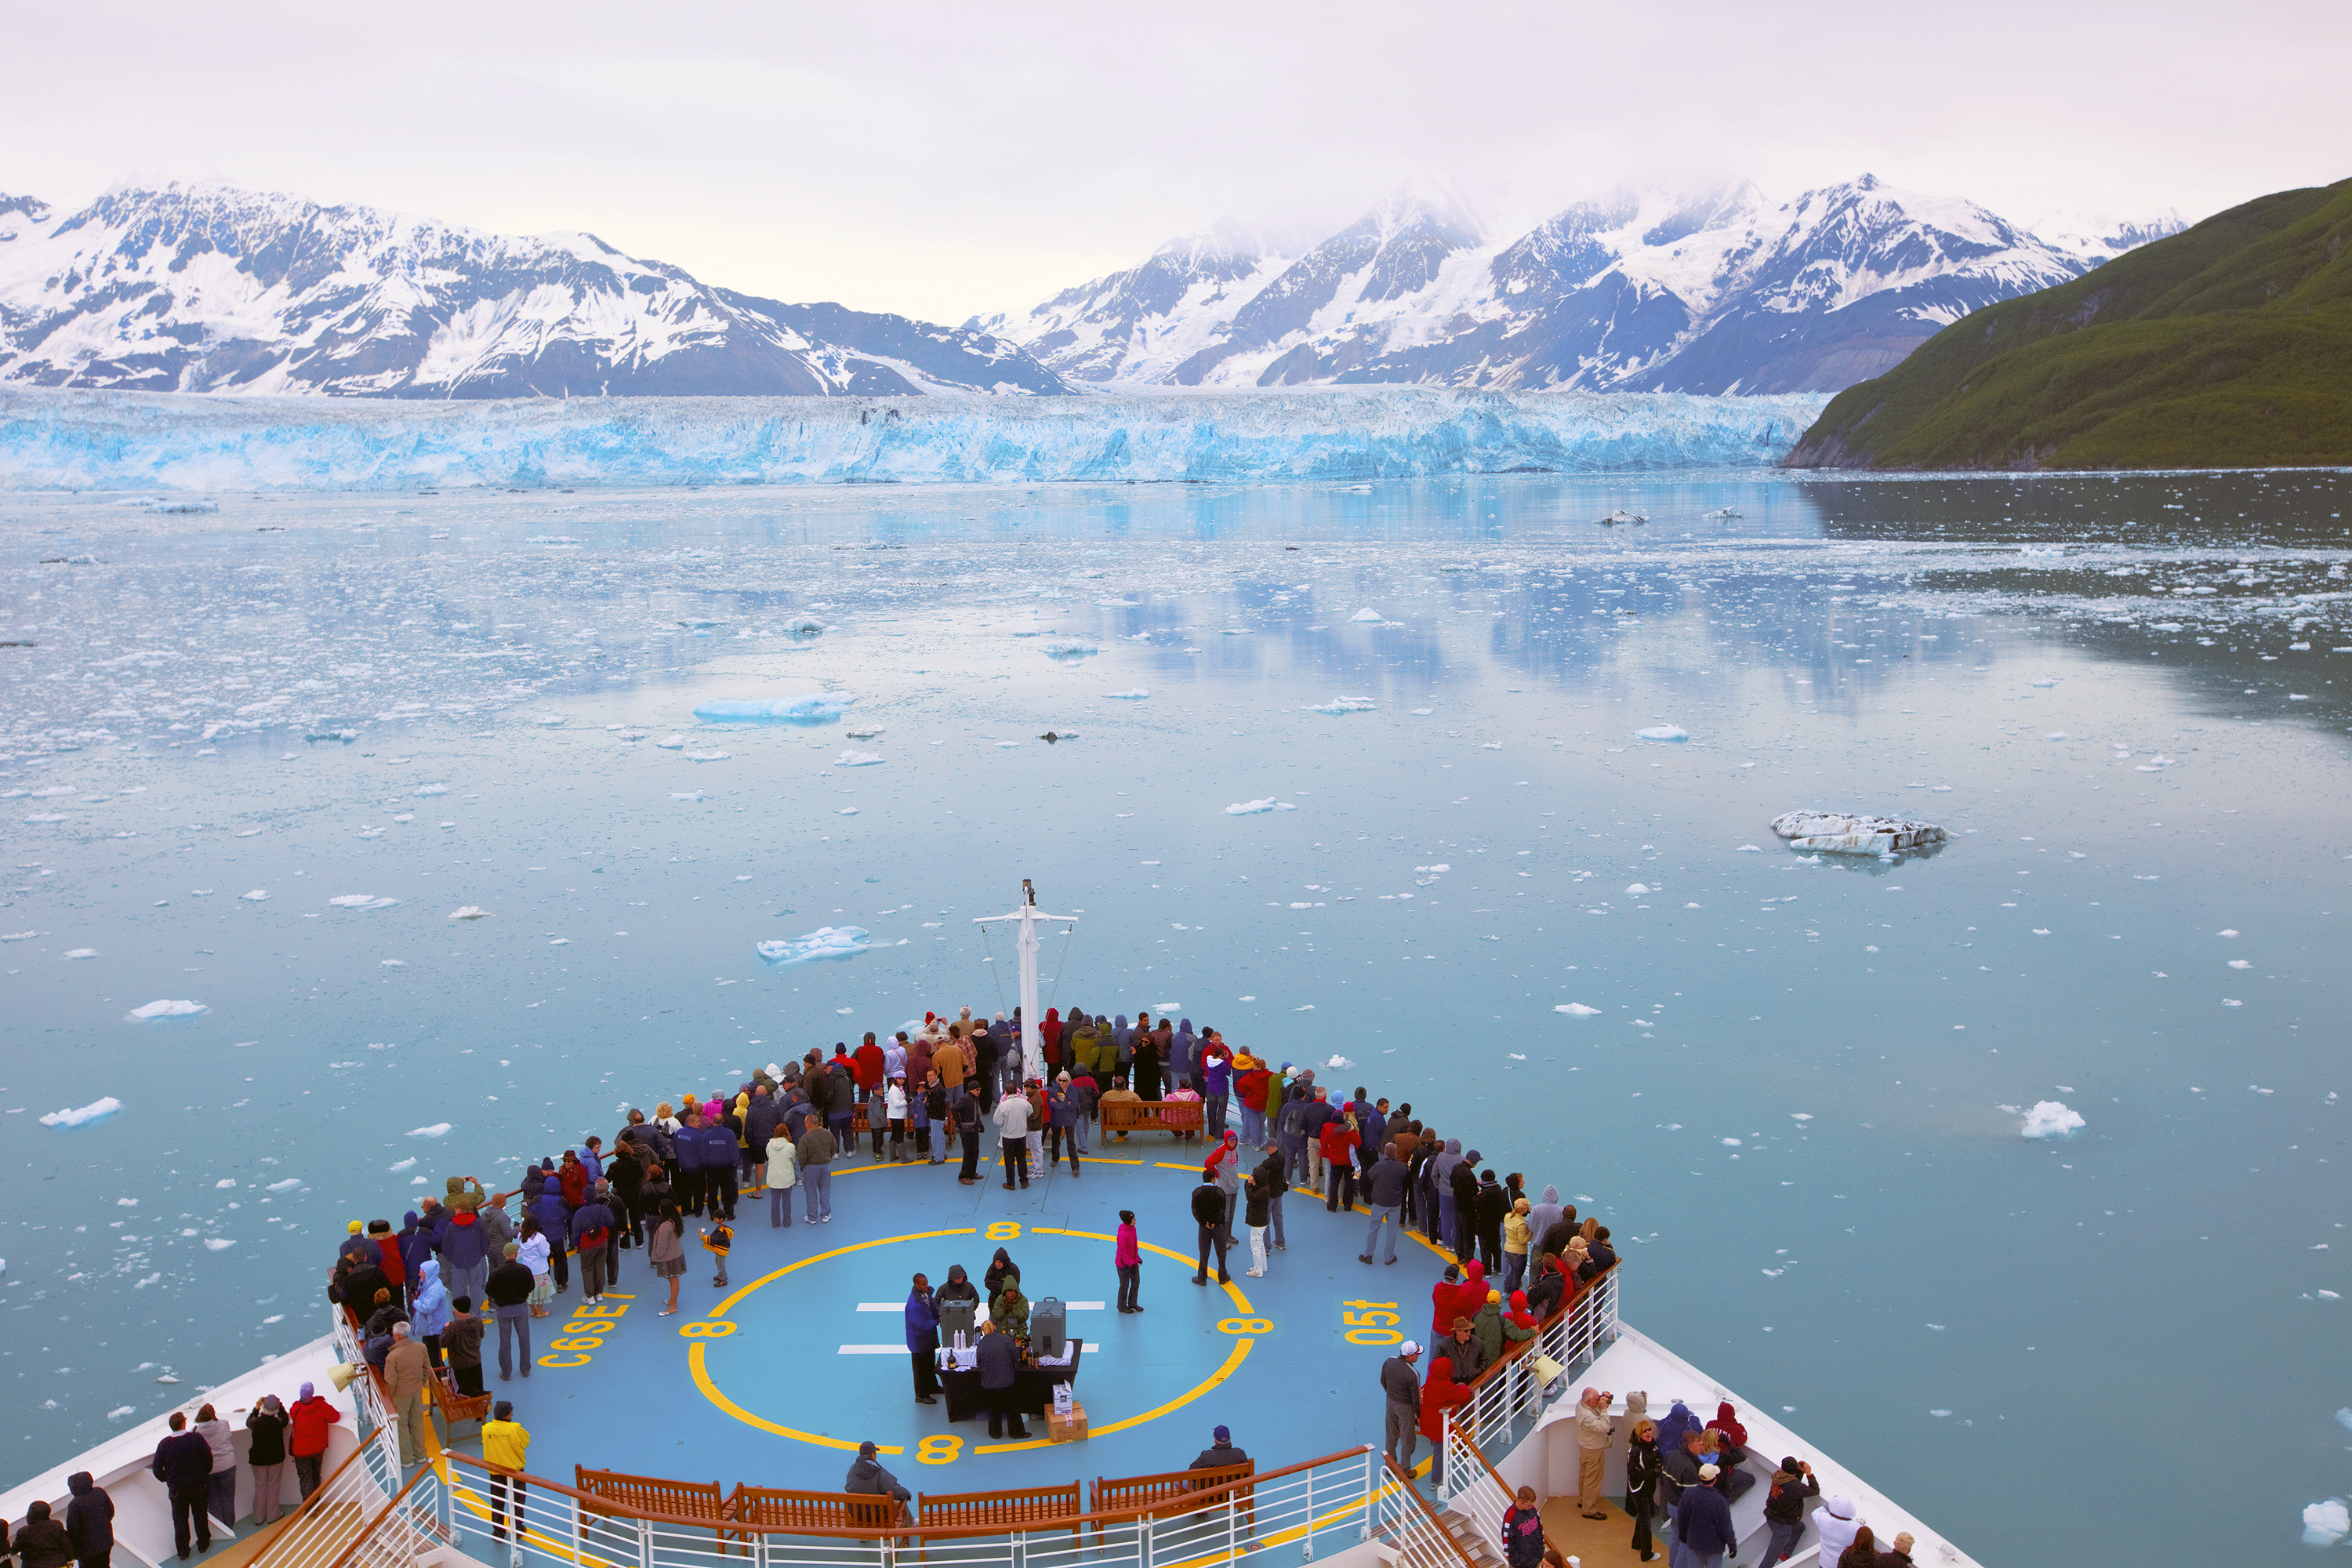 RD, Radiance of the Seas, Hubbard Glacier, Alaska, overhead view of front of ship''s top deck, people on deck looking out at glacier, ice floes, mountains,